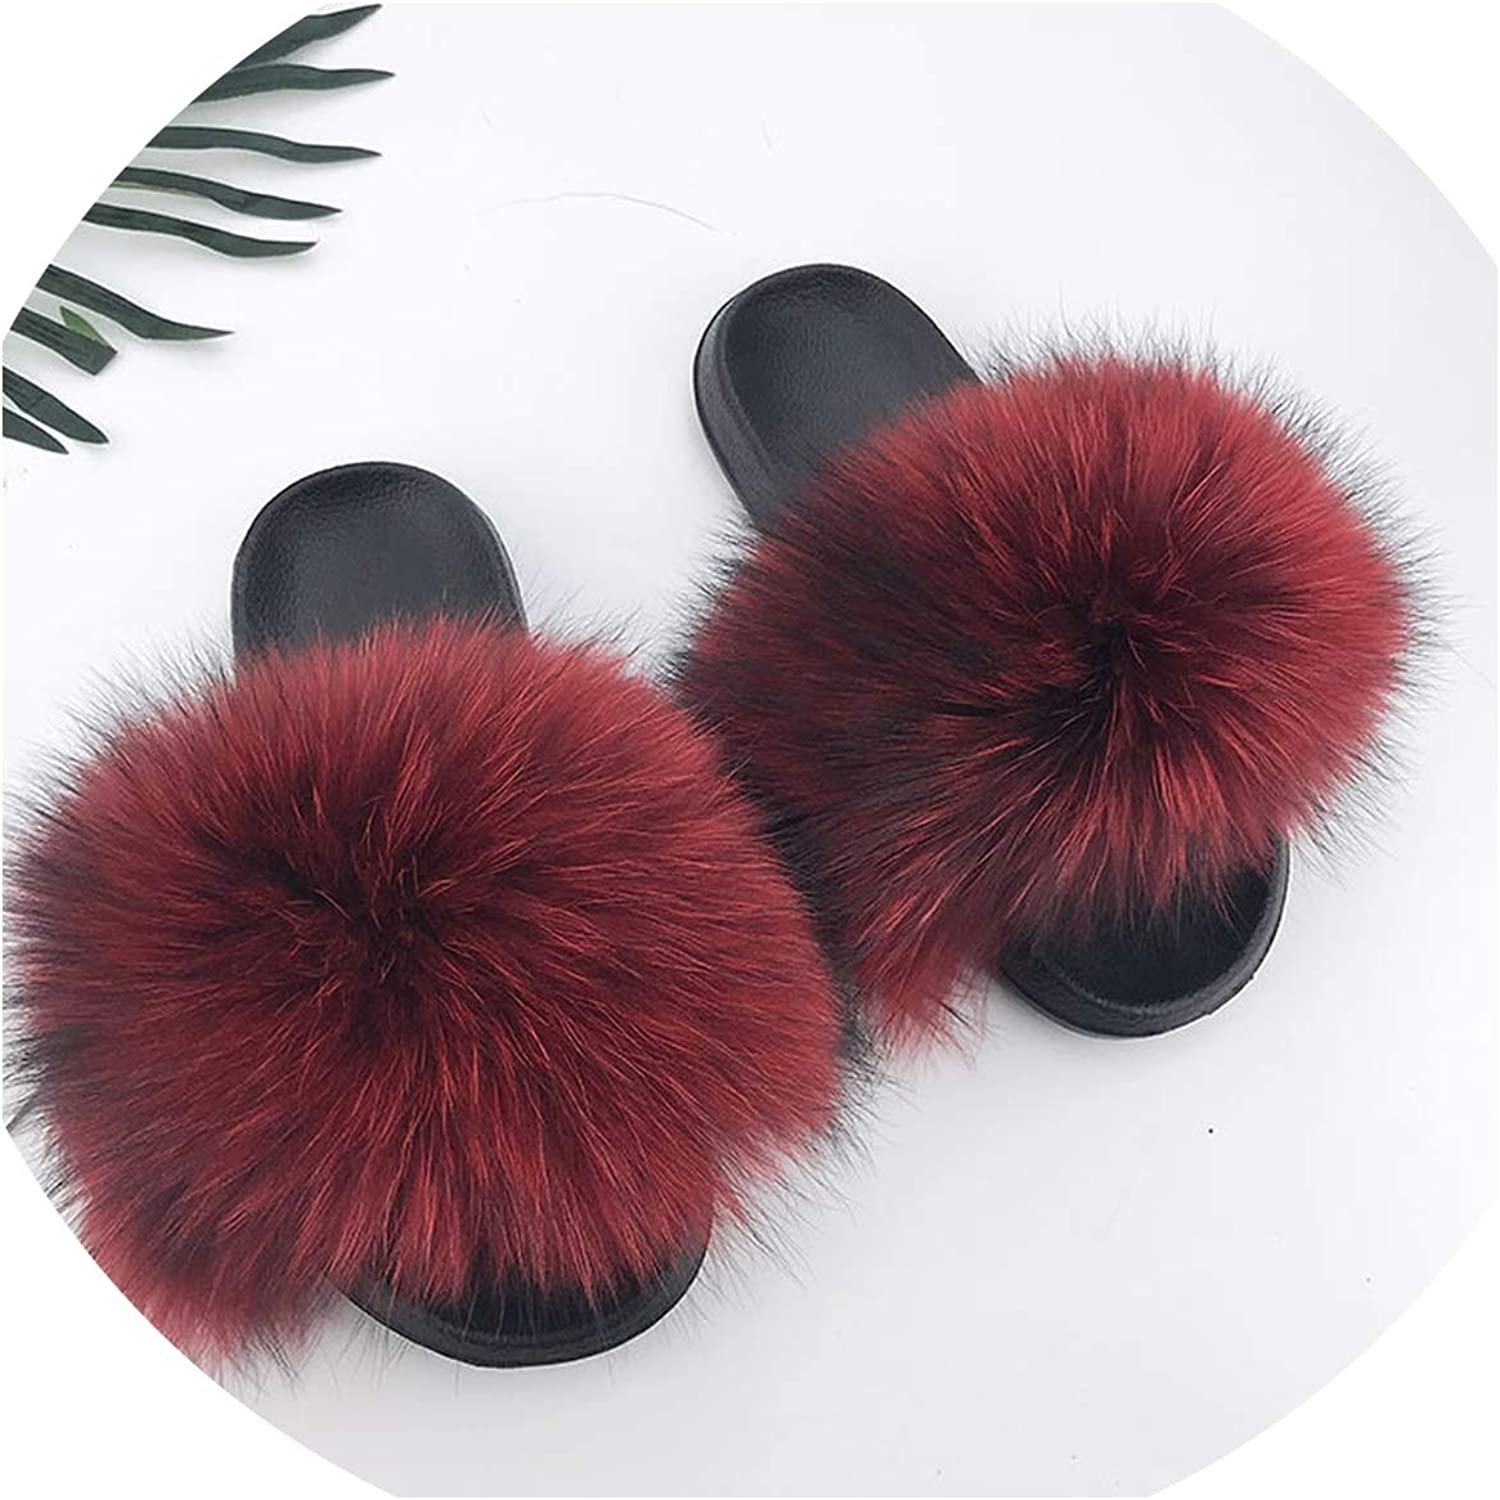 Just XiaoZhouZhou 28 colors Real Fur Slippers Women Fox Fluffy Sliders Comfort with Feathers Furry Summer Flats Sweet Ladies shoes Plus Size 36-45,6,10.5